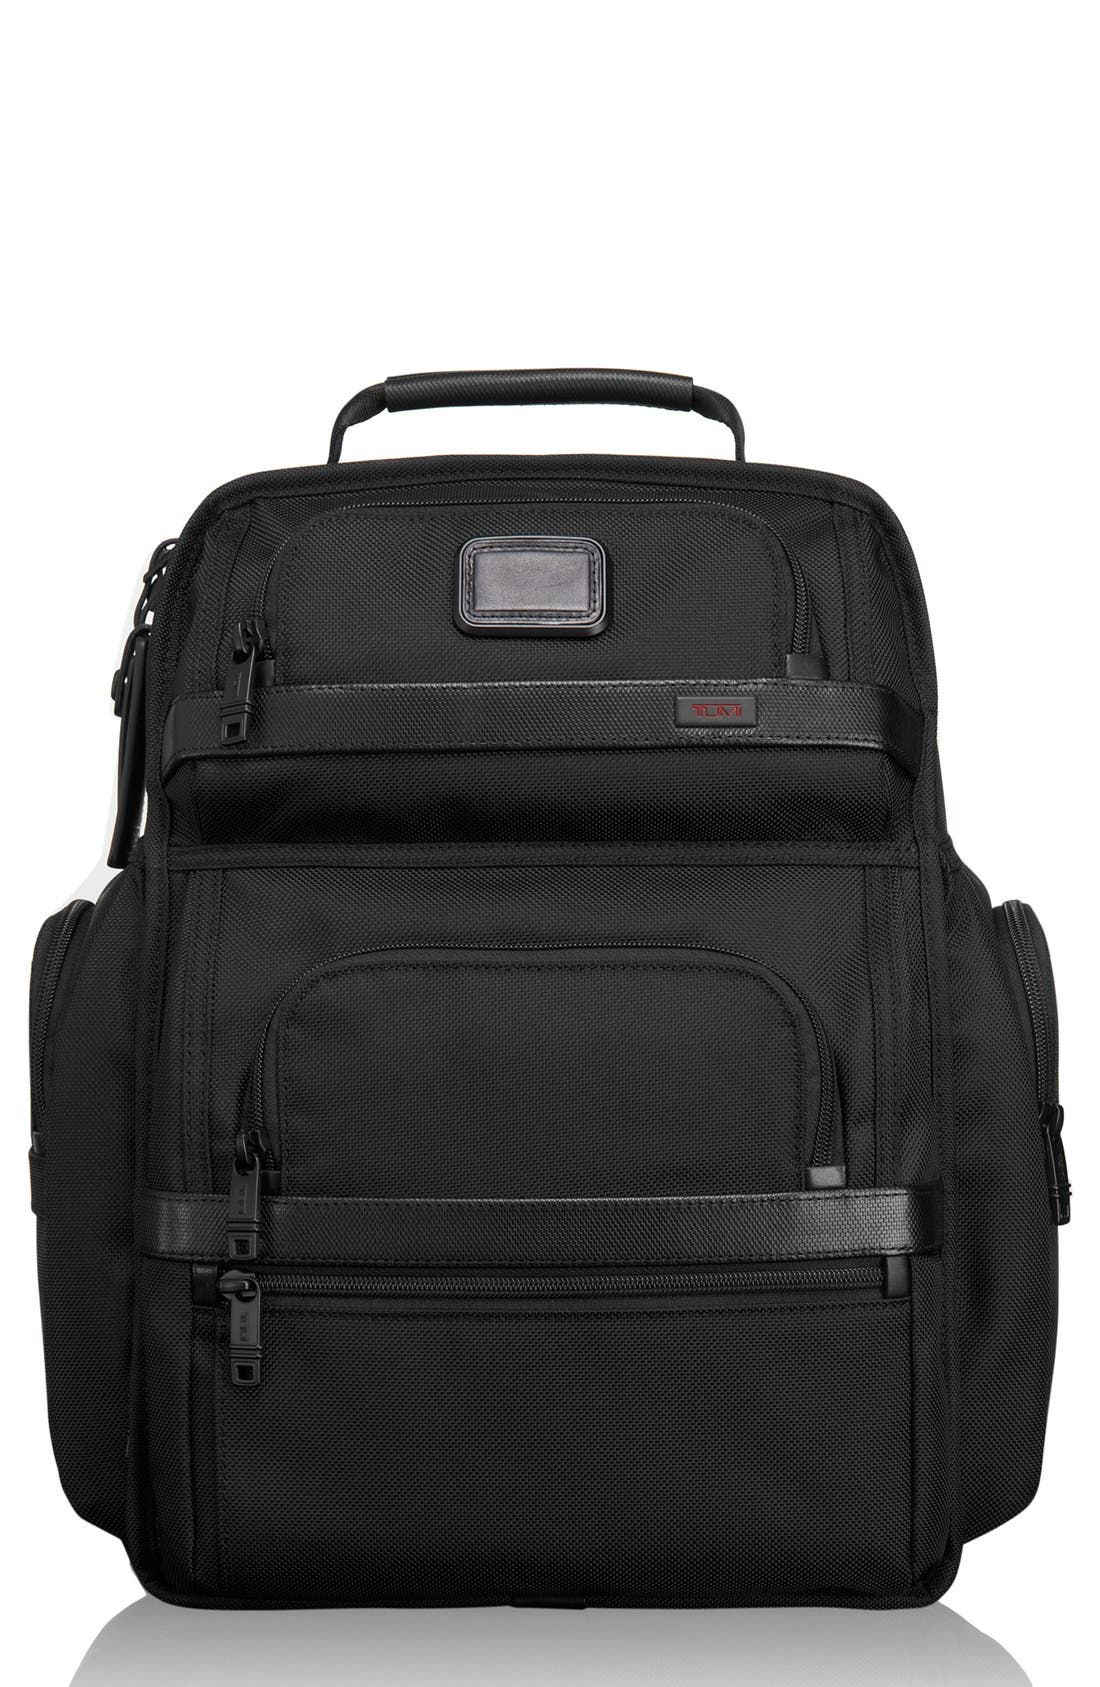 Alpha 2 T-Pass Laptop Brief Pack with Tumi ID Lock Pocket,                         Main,                         color, Black